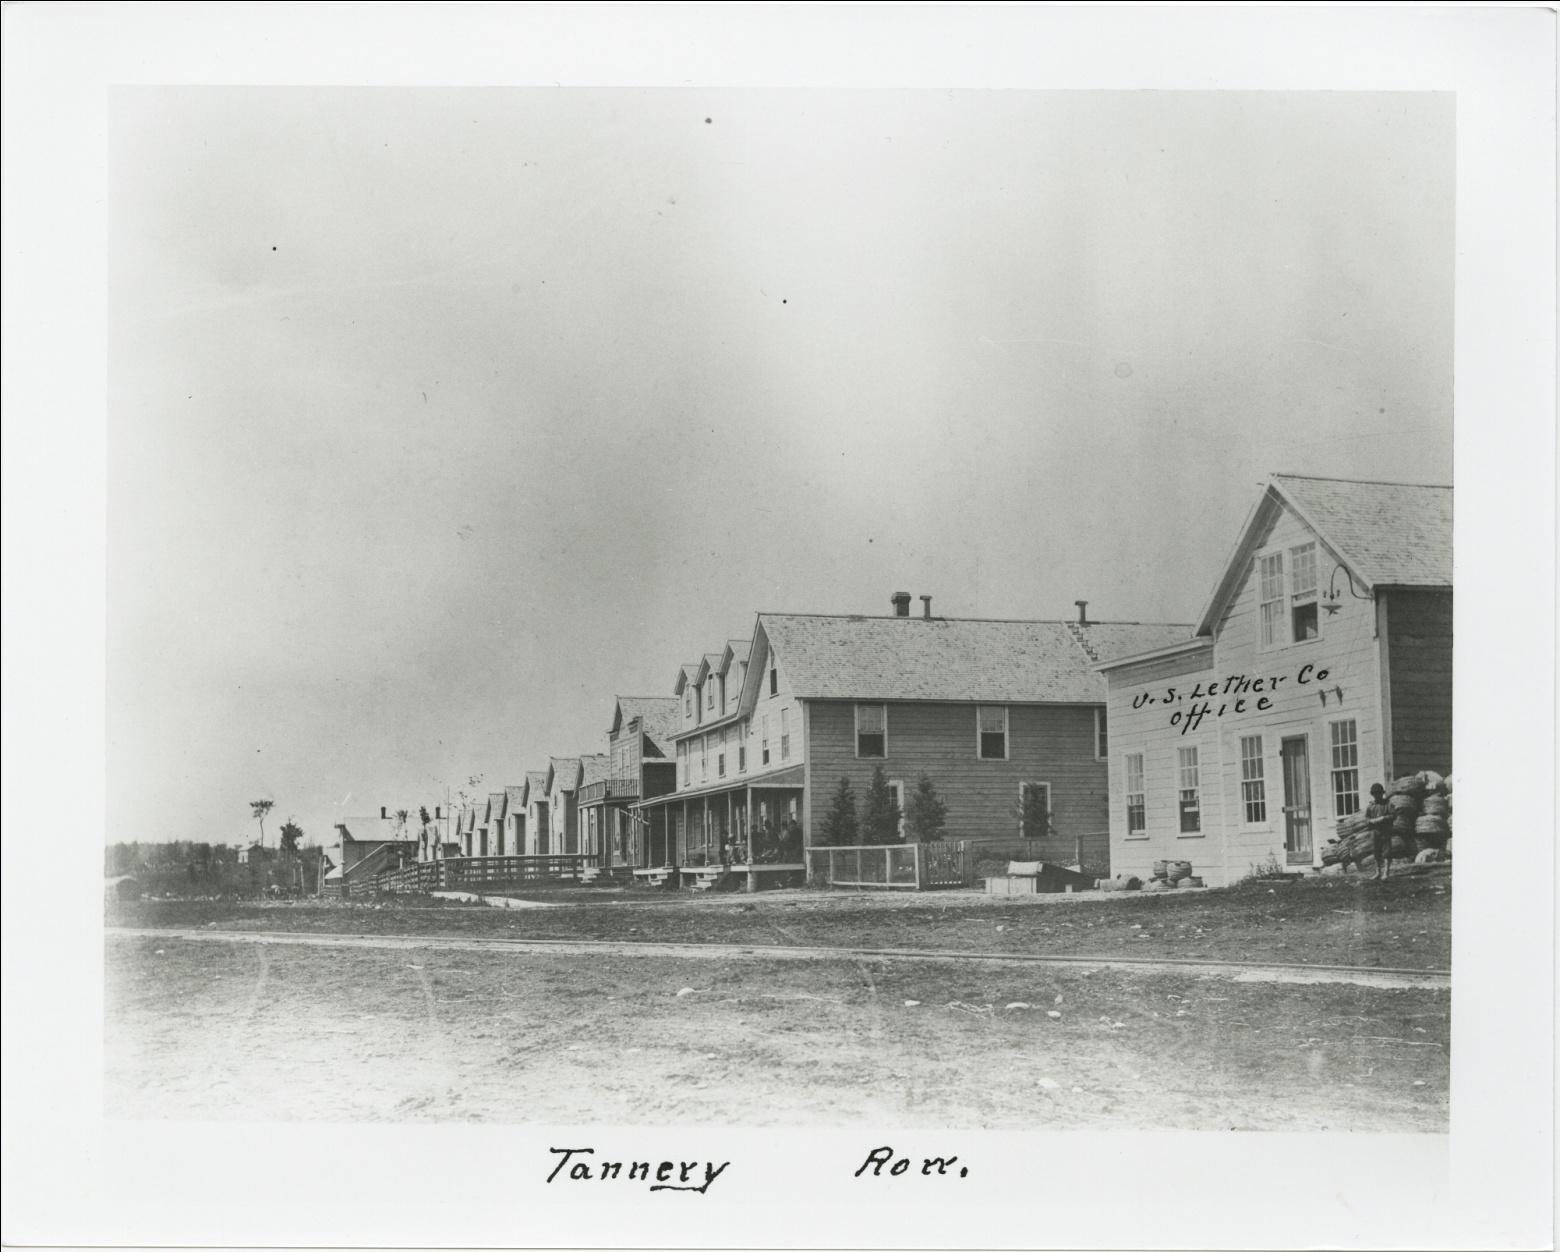 "C:\Users\Robert P. Rusch\Desktop\II. RLHSoc\Documents & Photos-Scanned\Rib Lake History 10700-10799\10788-P. ""Tannery Row"" US Leather Co. office, view west, dow.jpg"